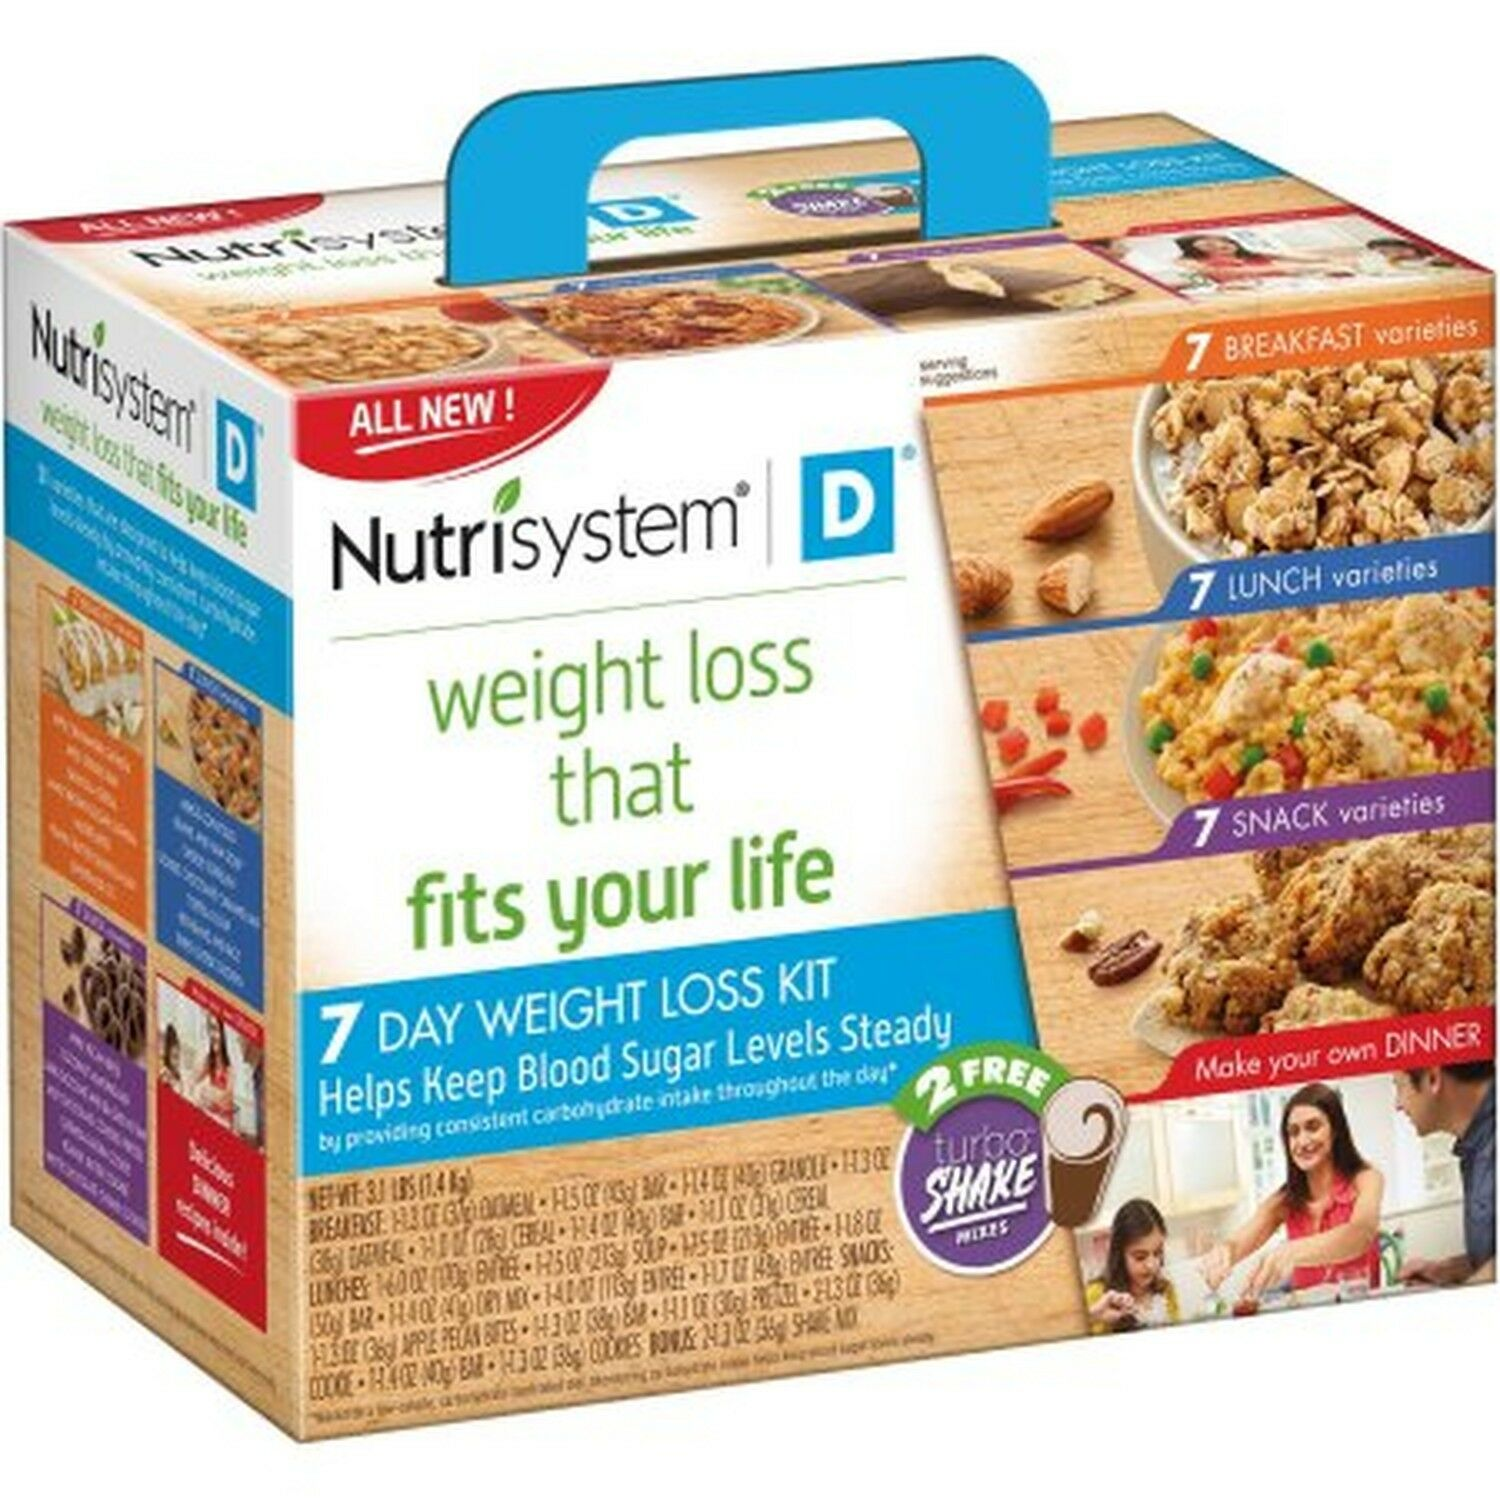 Nutrisystem: A Program For Successful Weight Loss